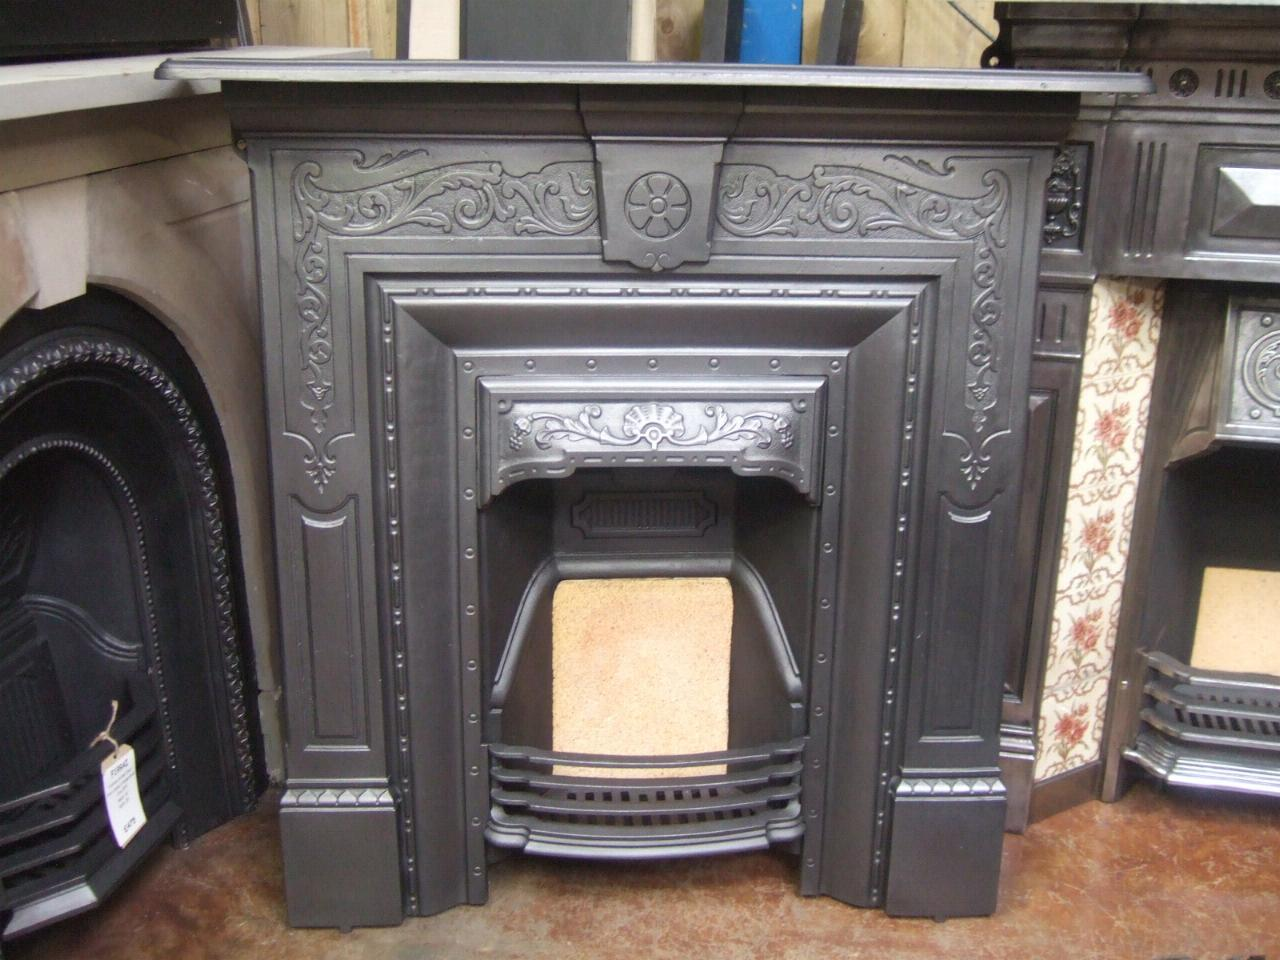 Original Victorian Cast Iron Fireplace - 163LC - Old Fireplaces